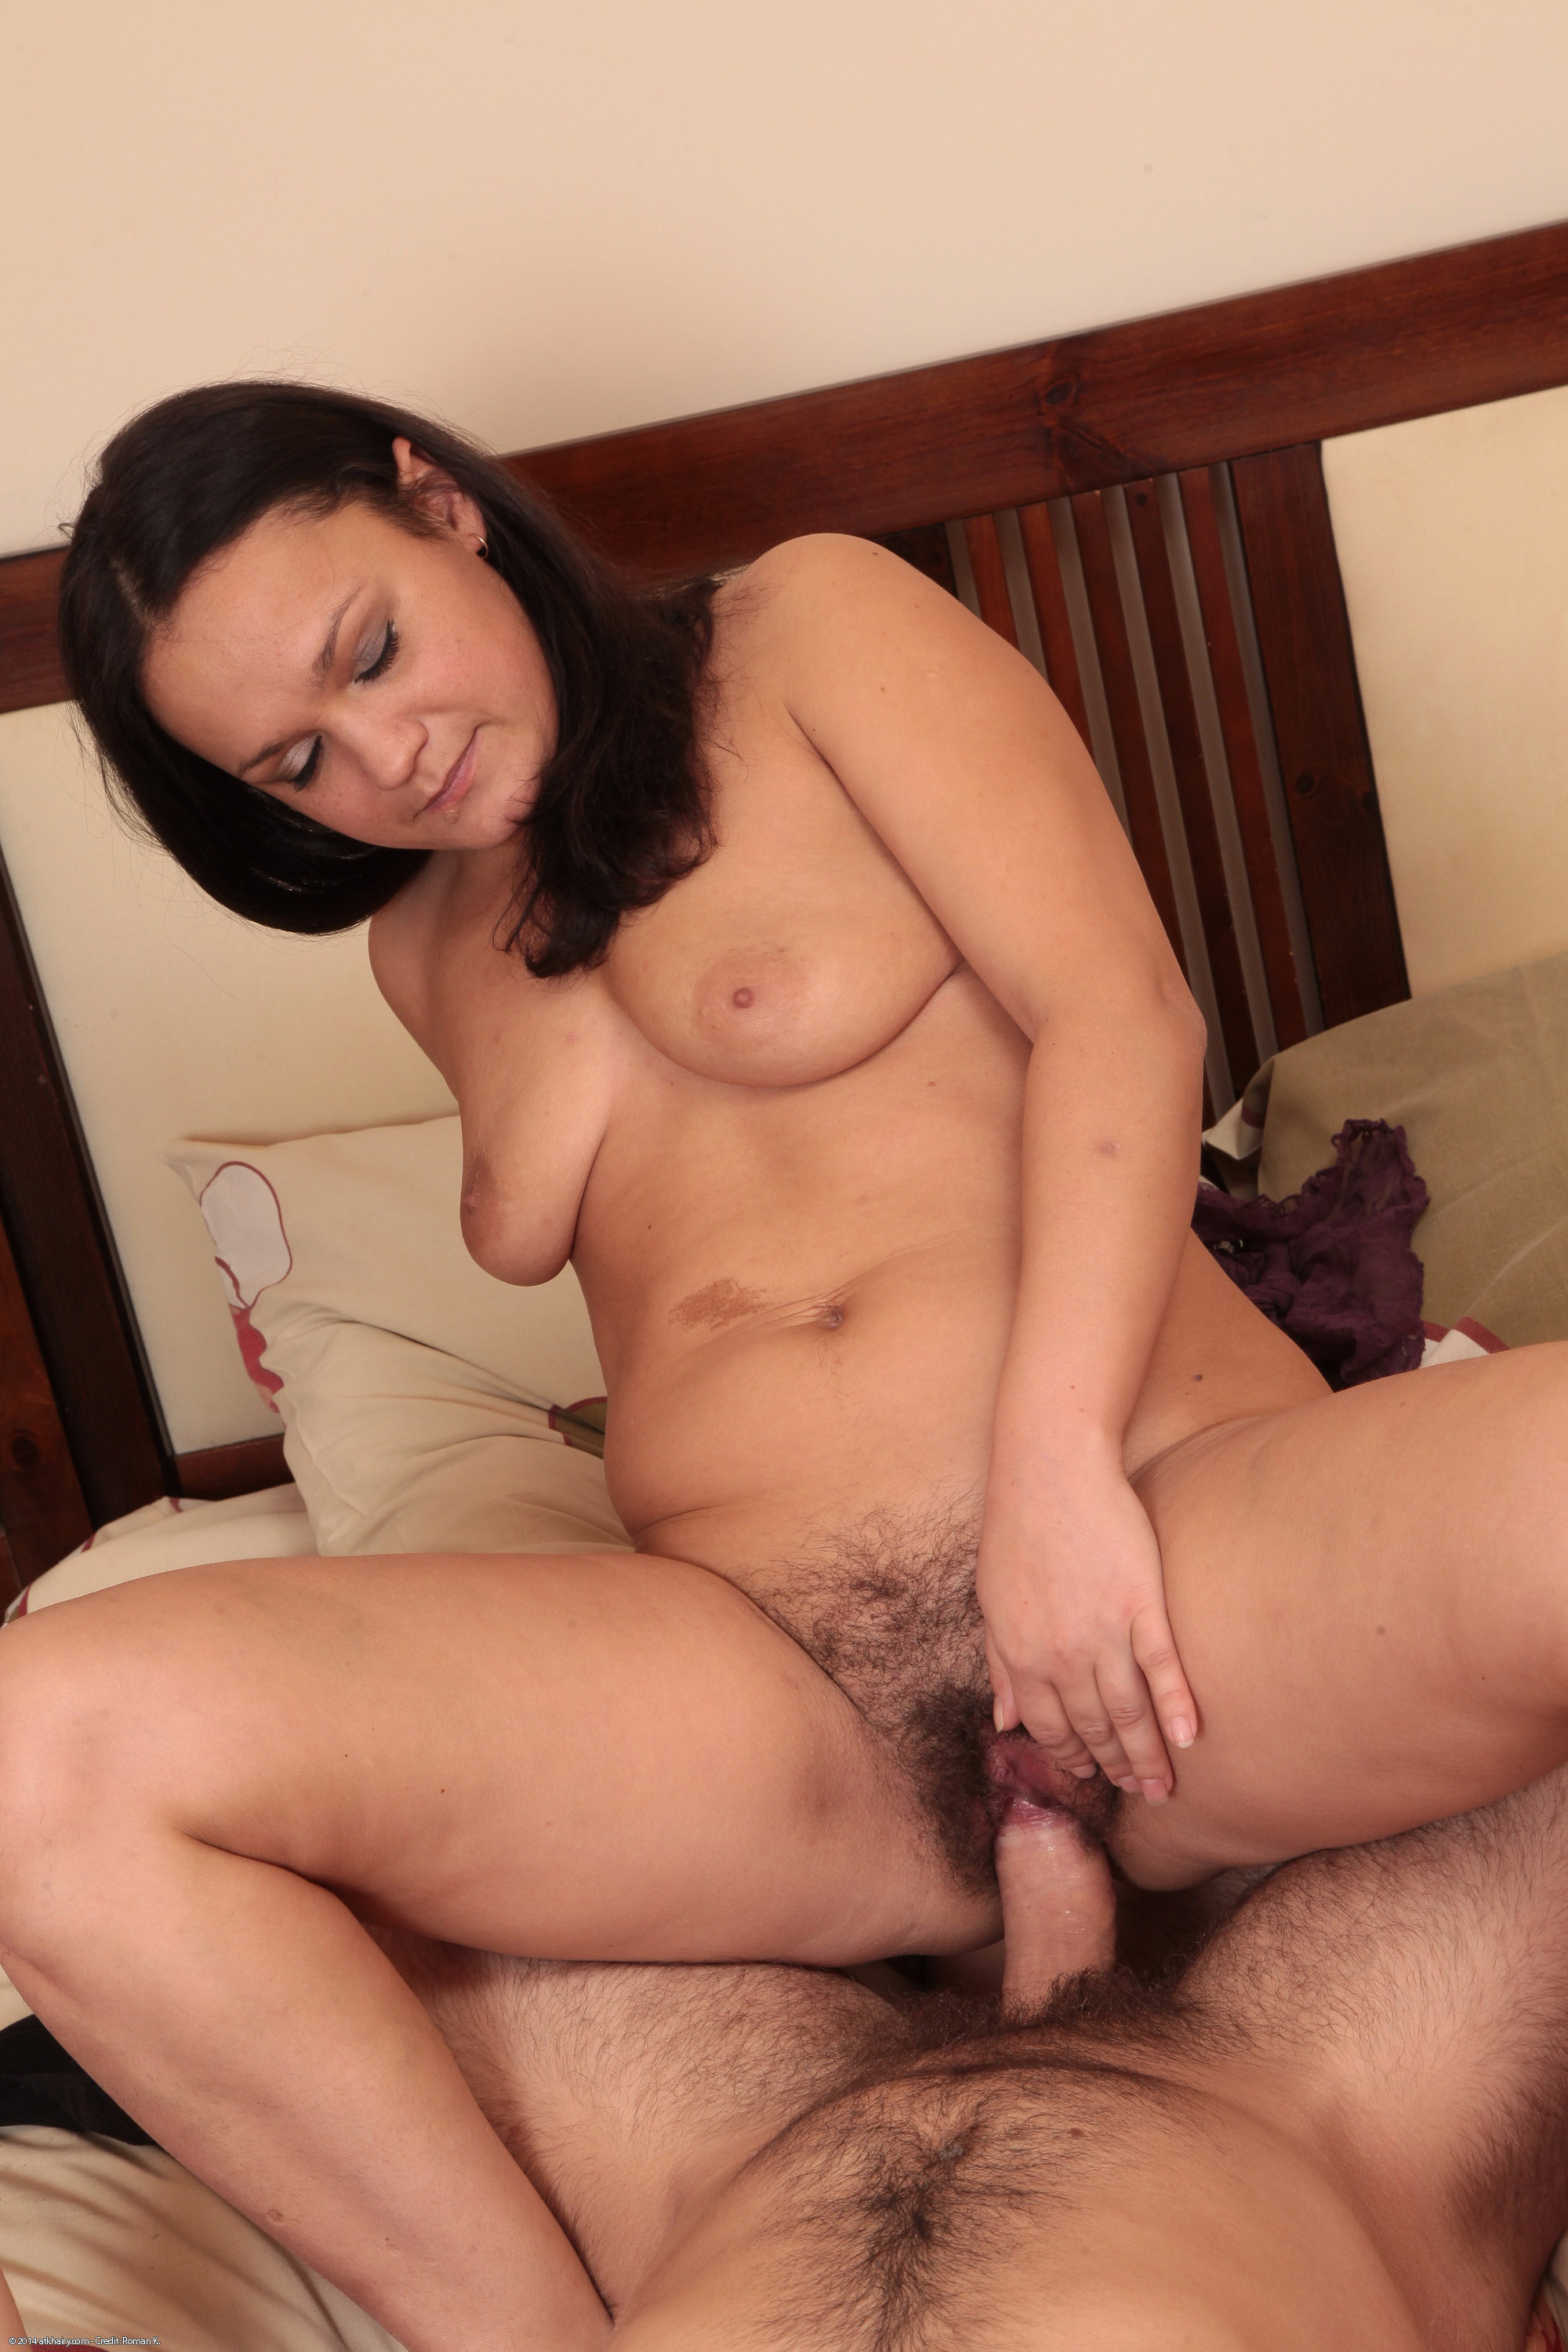 Assured, milf anal hairy what excellent